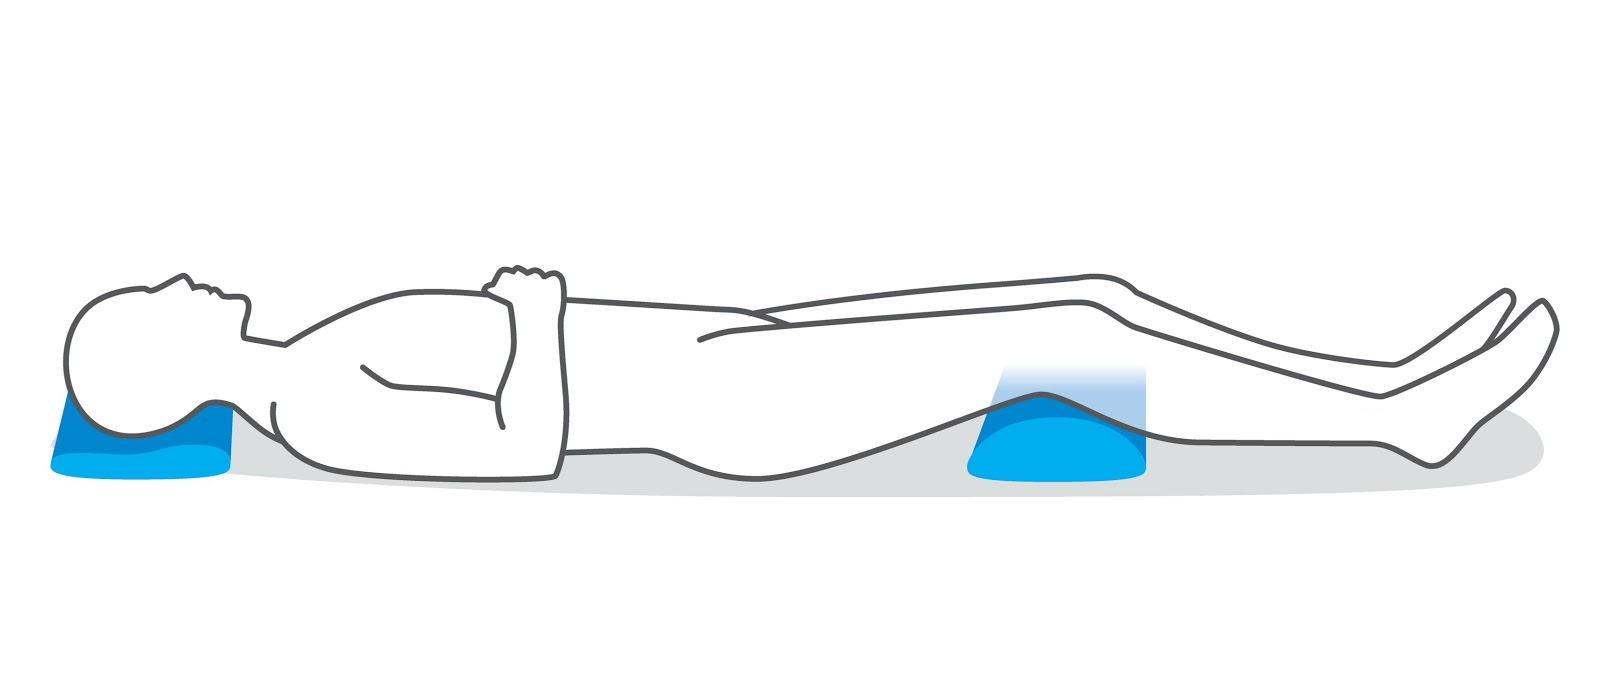 best sleeping positions for back pain 1